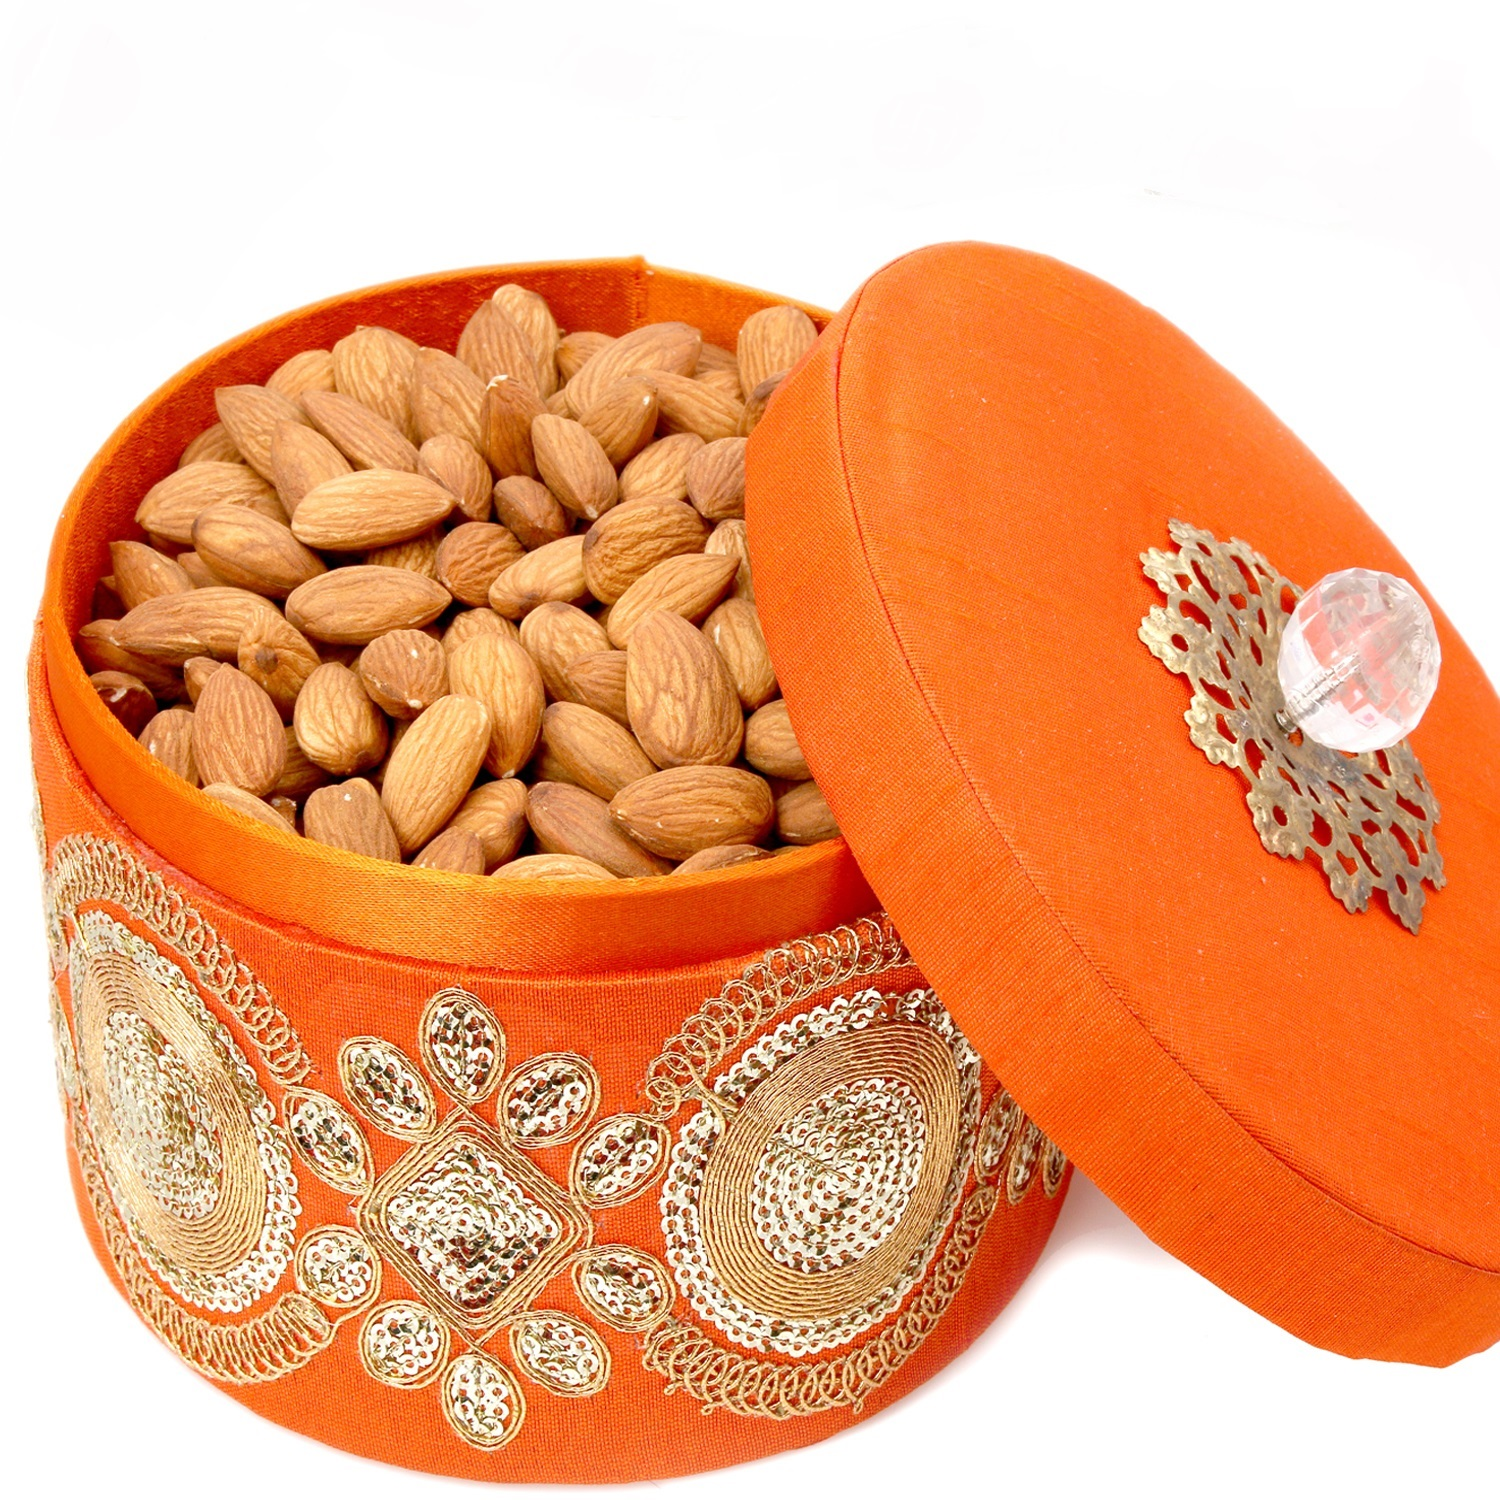 Round Orange Almond Box